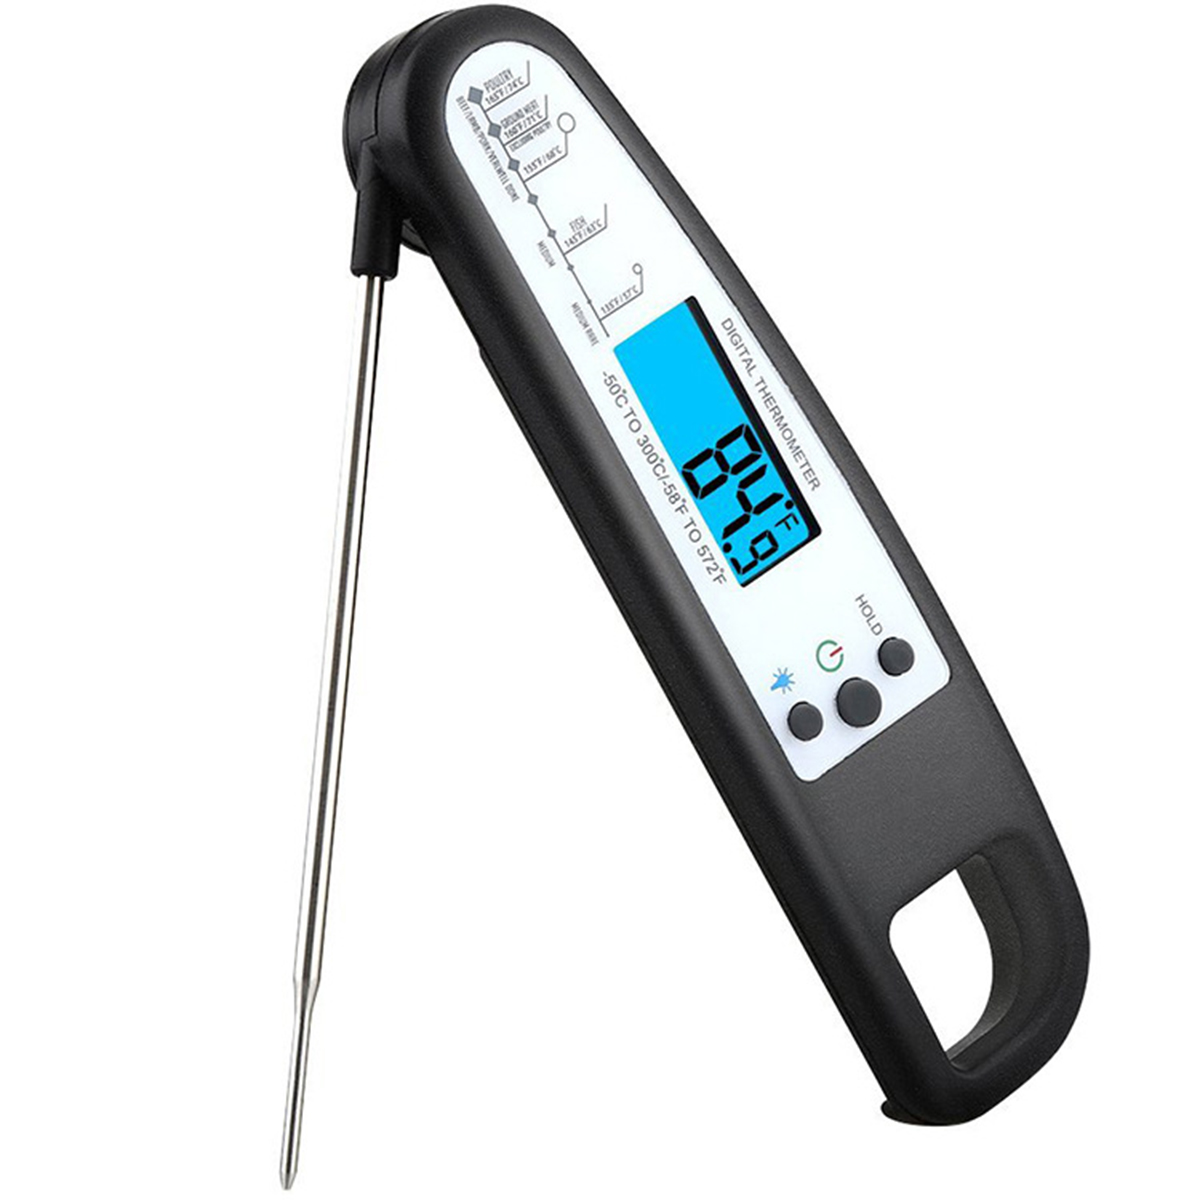 Digital Rotatable Instant Read Food Meat Thermometer w/ Probe for Cooking BBQ Grill Kitchen - Black